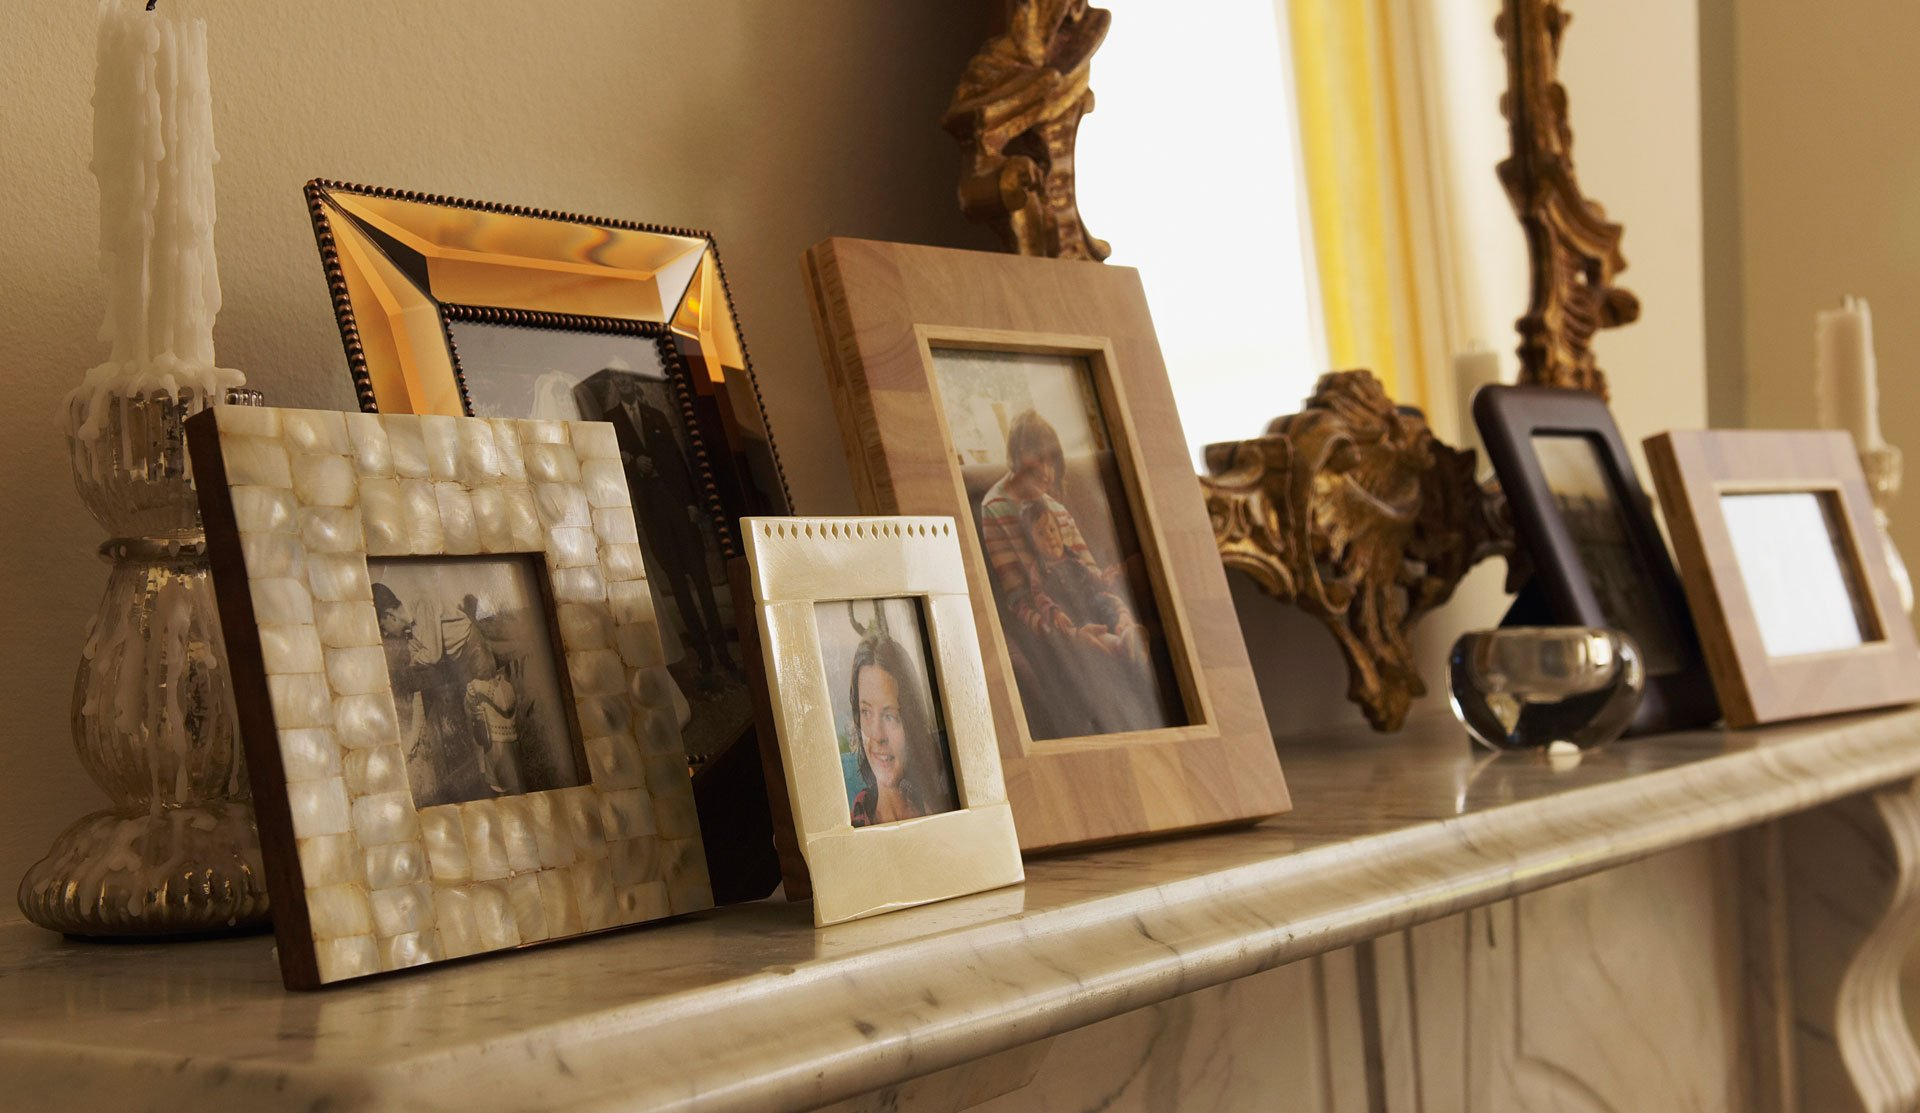 Commercial picture framing